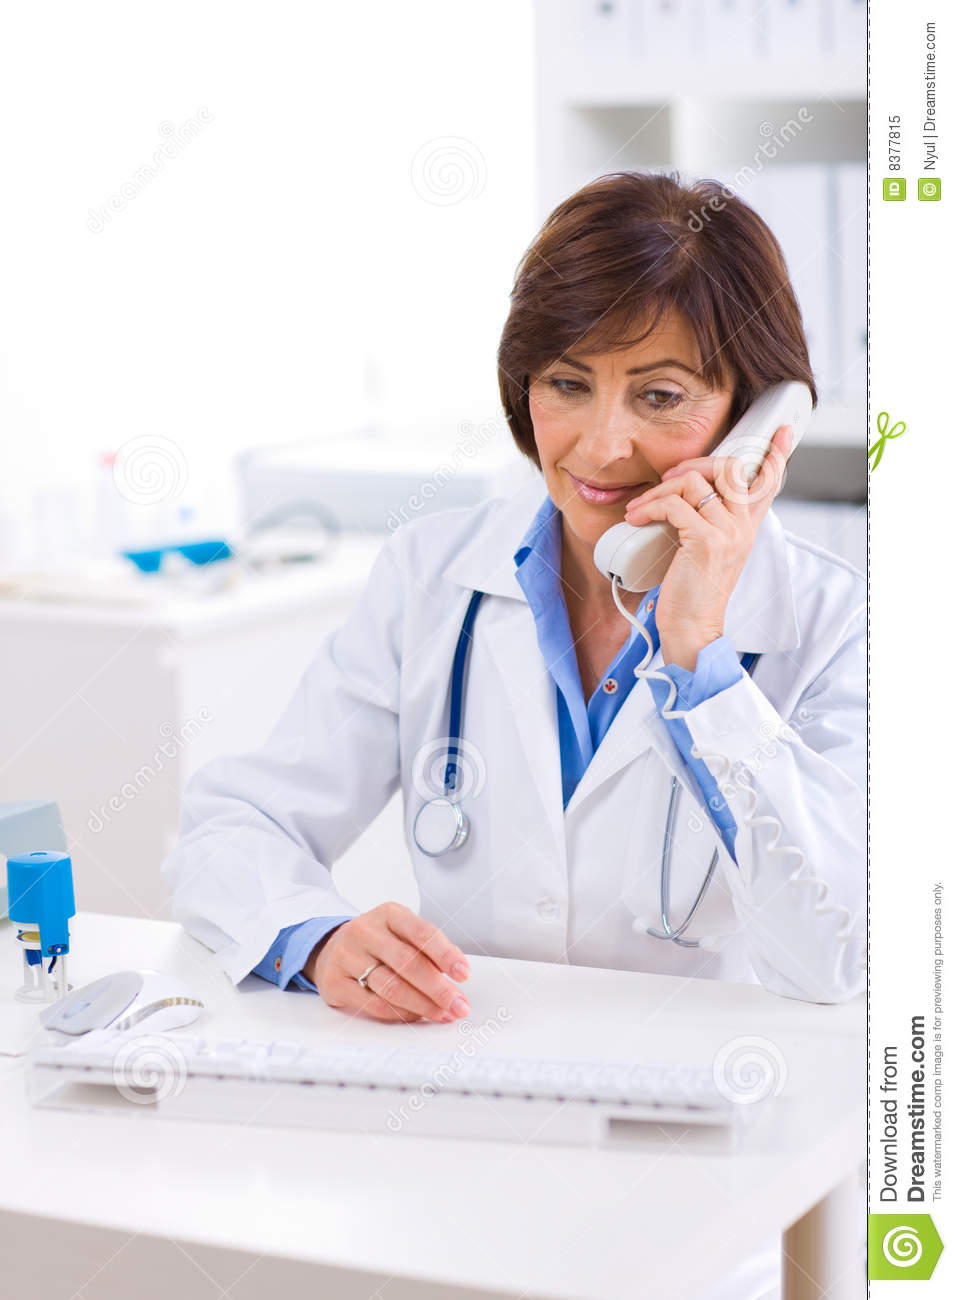 Doctor Calling On Phone Royalty Free Stock Photo  Image